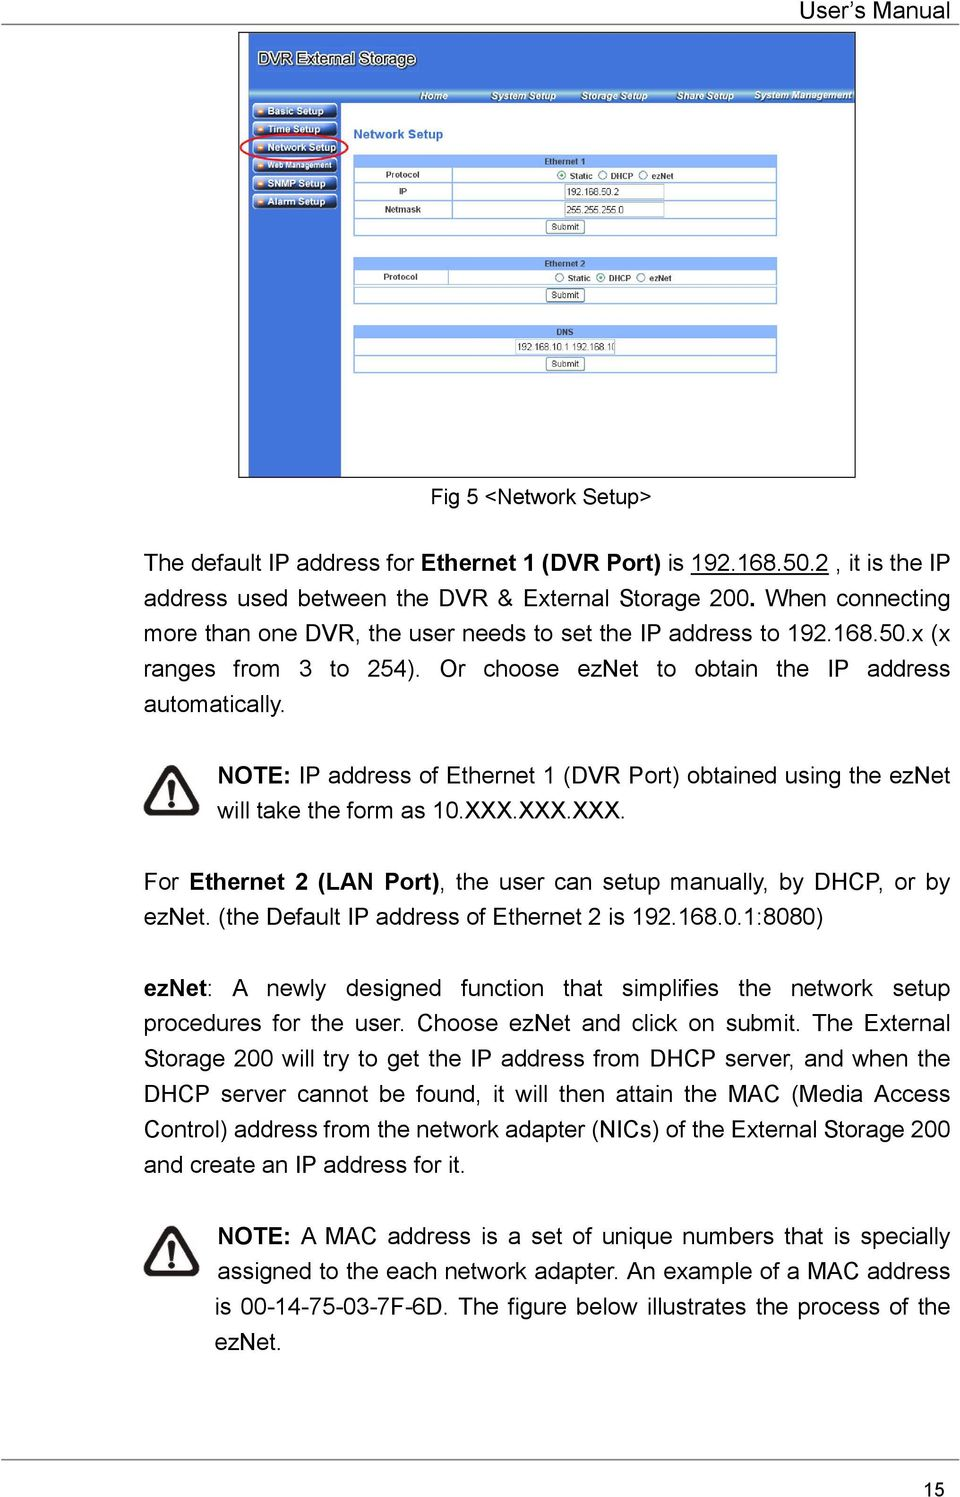 NOTE: IP address of Ethernet 1 (DVR Port) obtained using the eznet will take the form as 10.XXX.XXX.XXX. For Ethernet 2 (LAN Port), the user can setup manually, by DHCP, or by eznet.